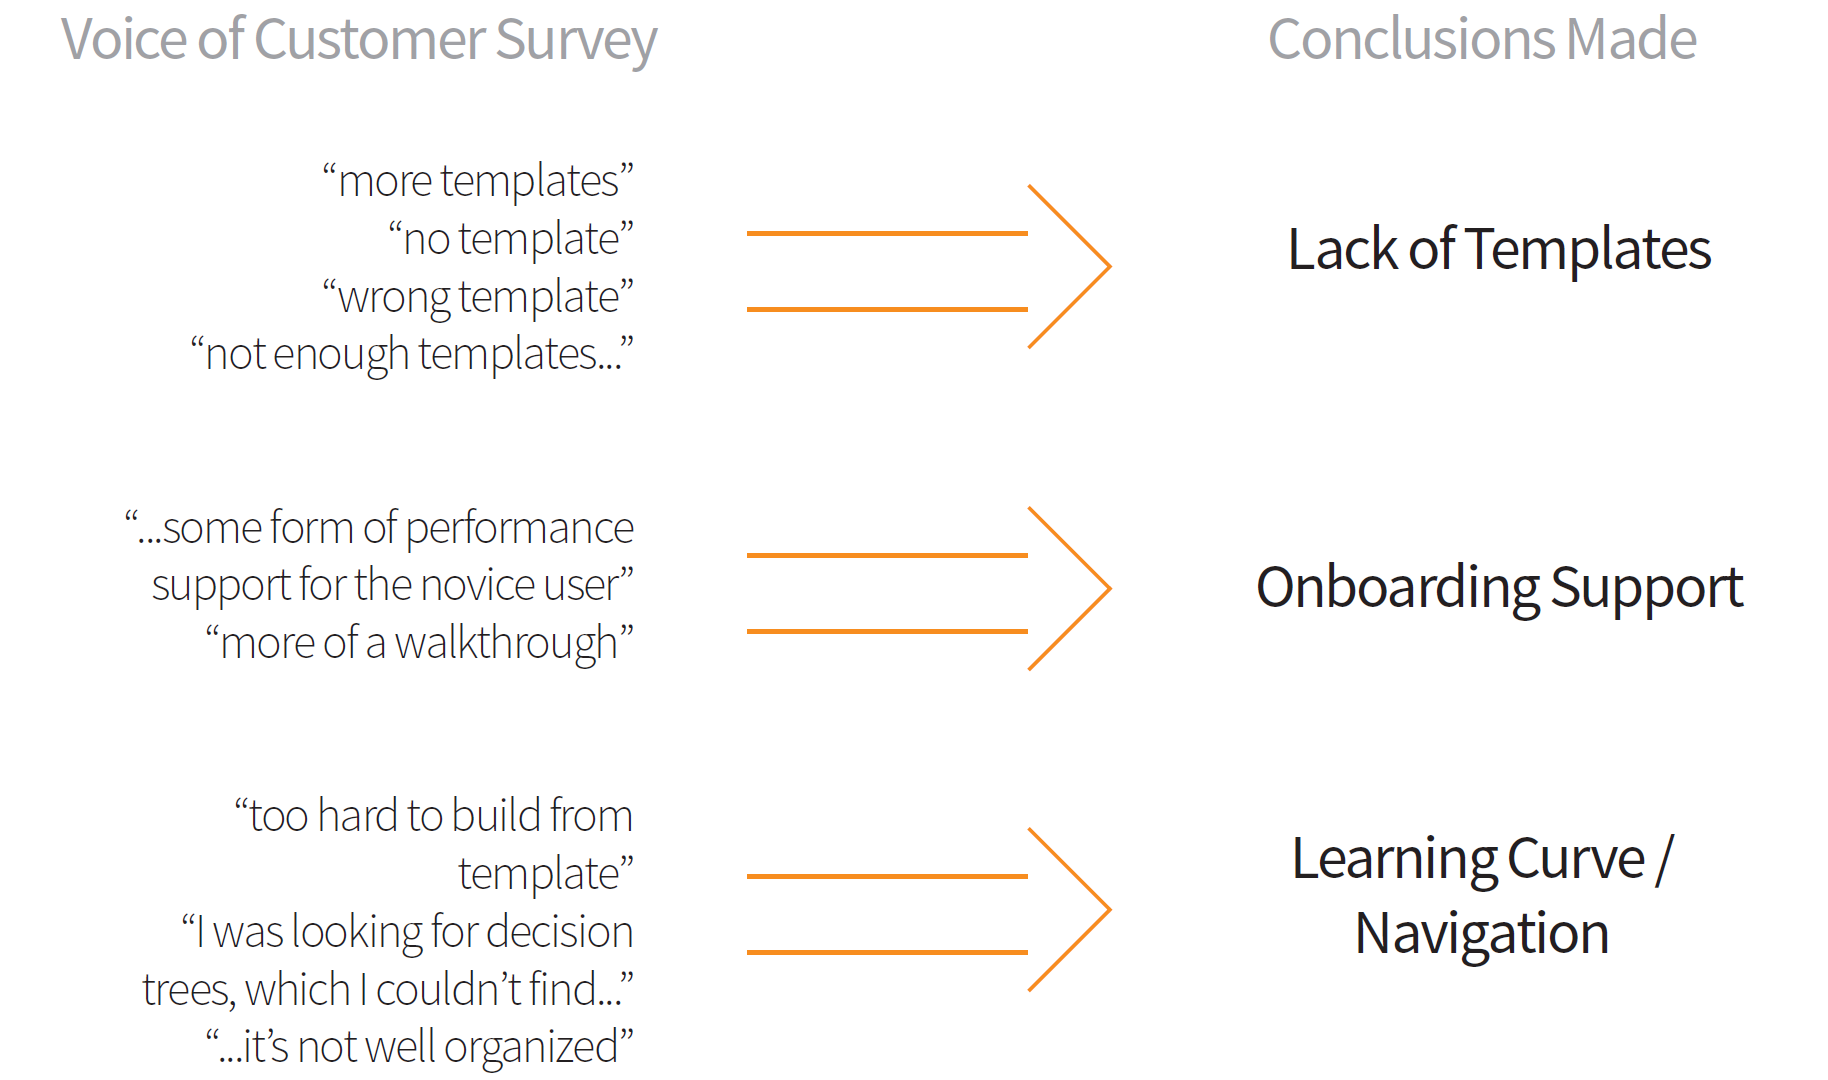 2. Data Analysis - Lucidchart's research team provided a template survey collected from different workflows / information sources in of their product. While analyzing the survey, we categorized customer complaints into three broader sections of issues.